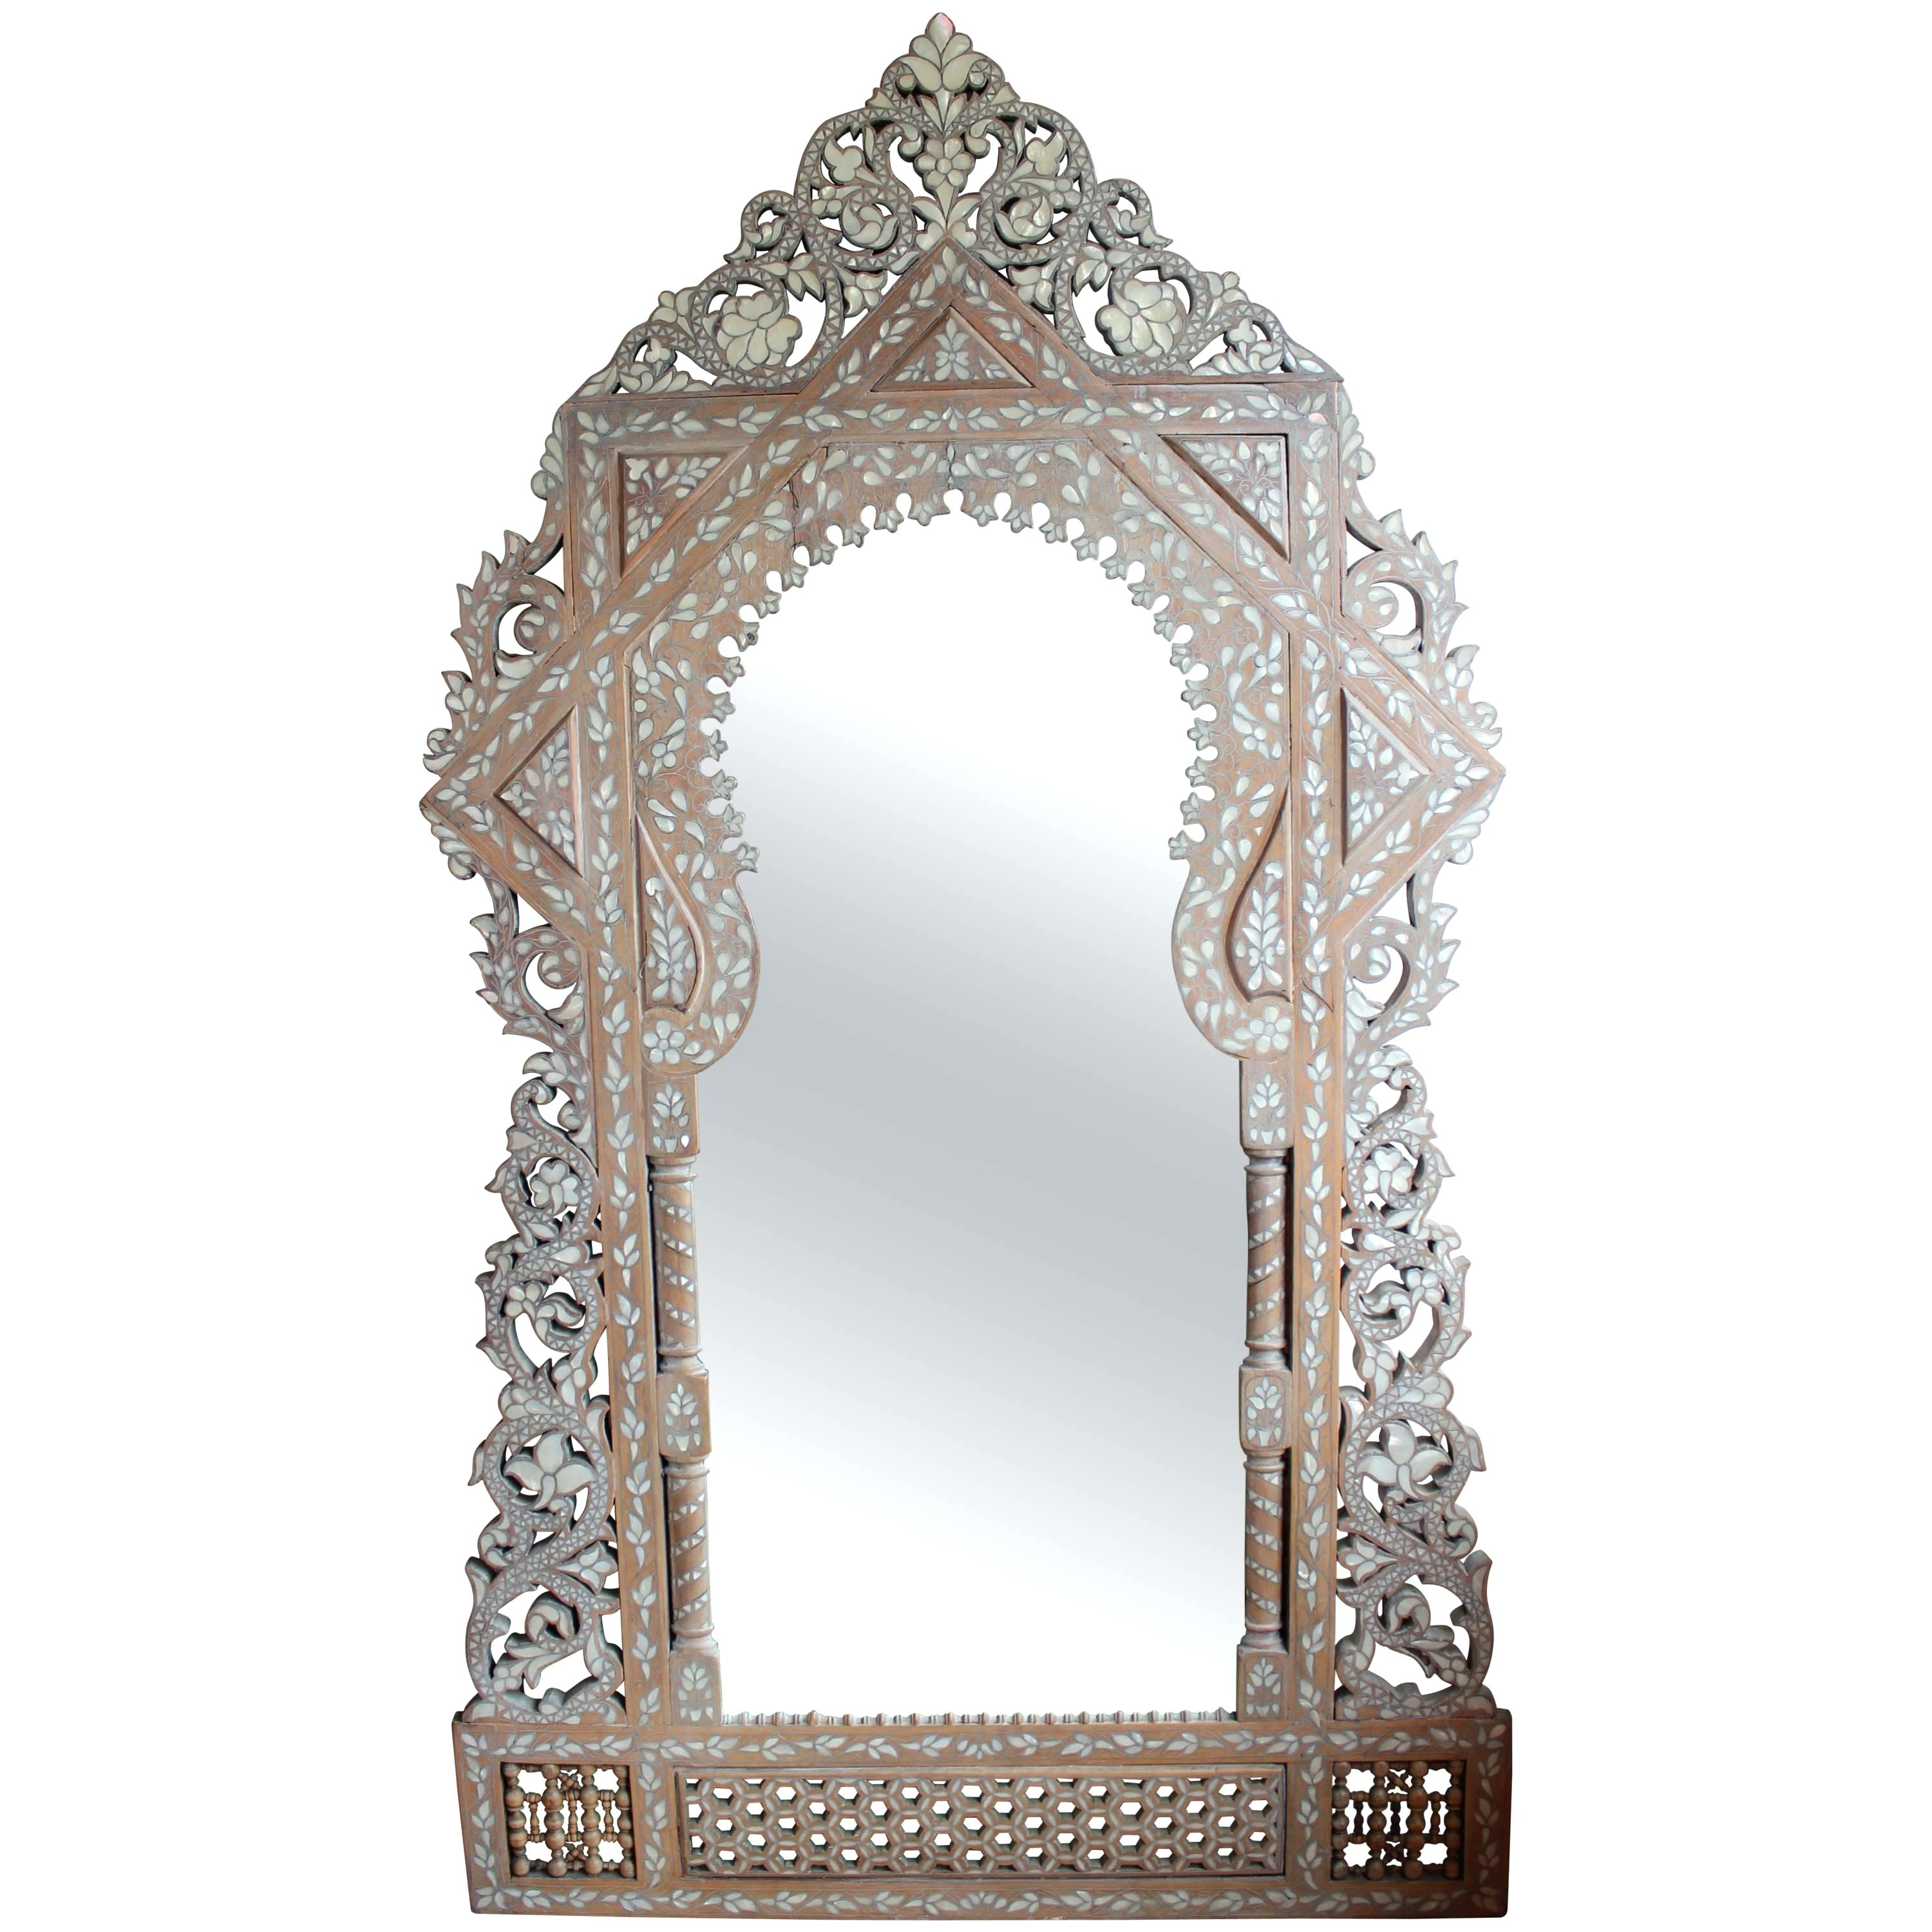 Mother Of Pearl Wall Mirrors Pertaining To Most Recent Mother Of Pearl Wall Mirror Decor Fresh Decorative Mirrors (View 20 of 20)